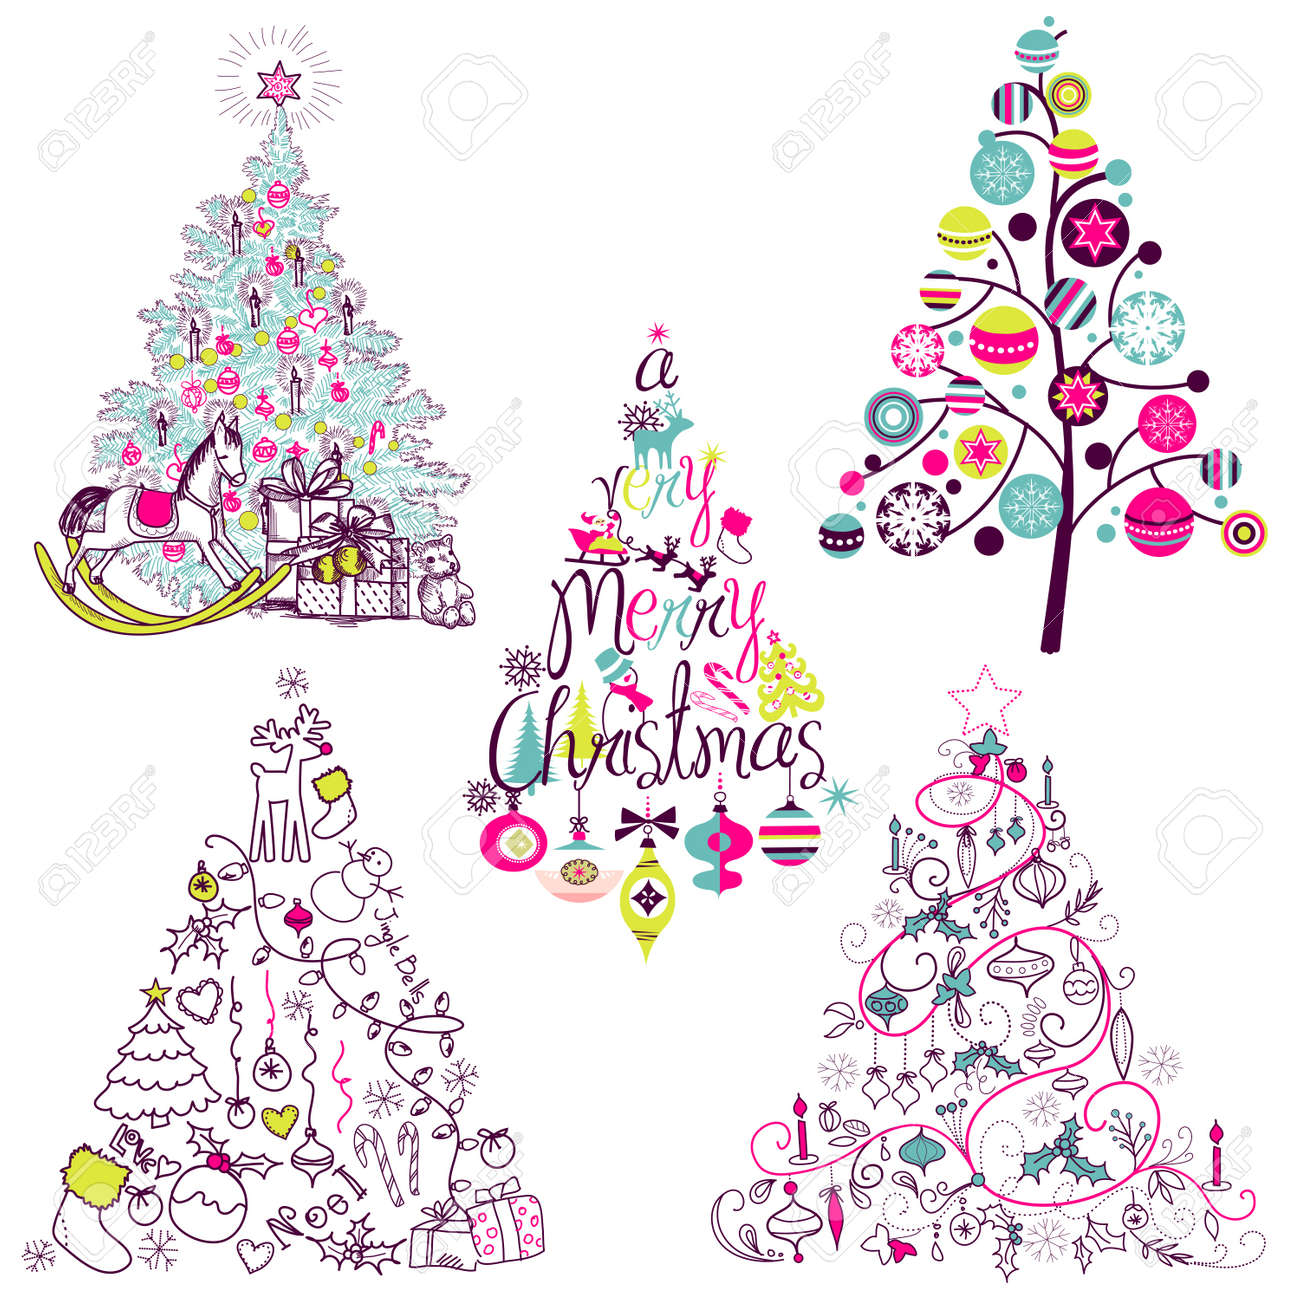 Christmas tree collection. Vintage, retro, cute, calligraphic - all type of hand drawn trees Stock Vector - 16681250